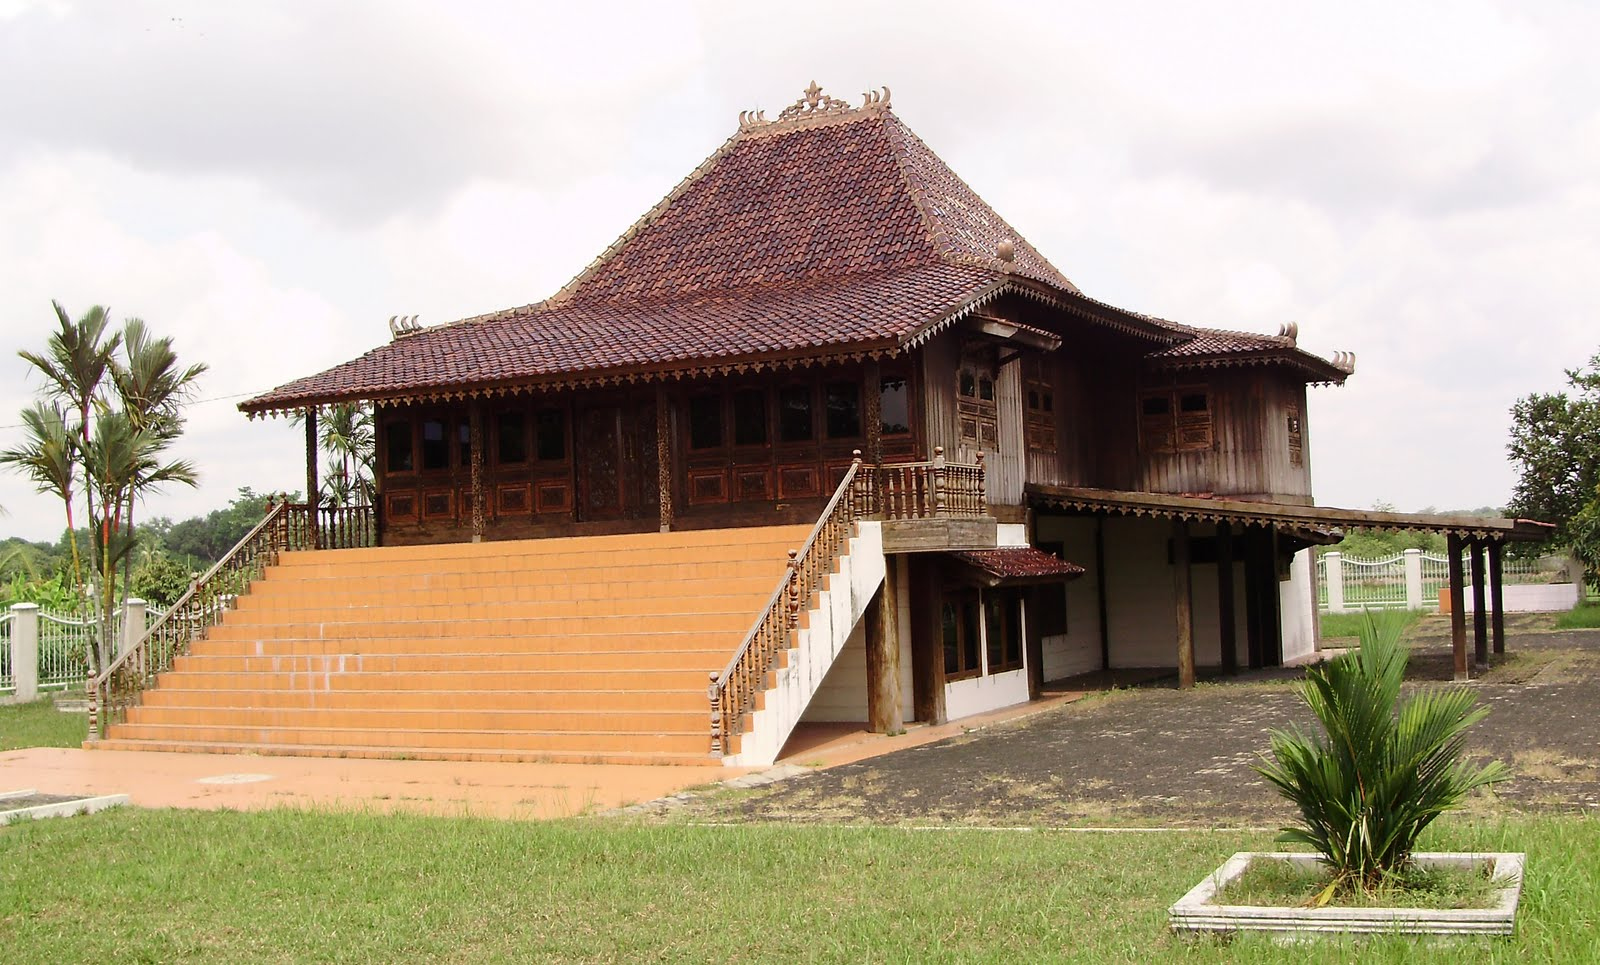 Download this Rumah Adat Tradisional Limas picture